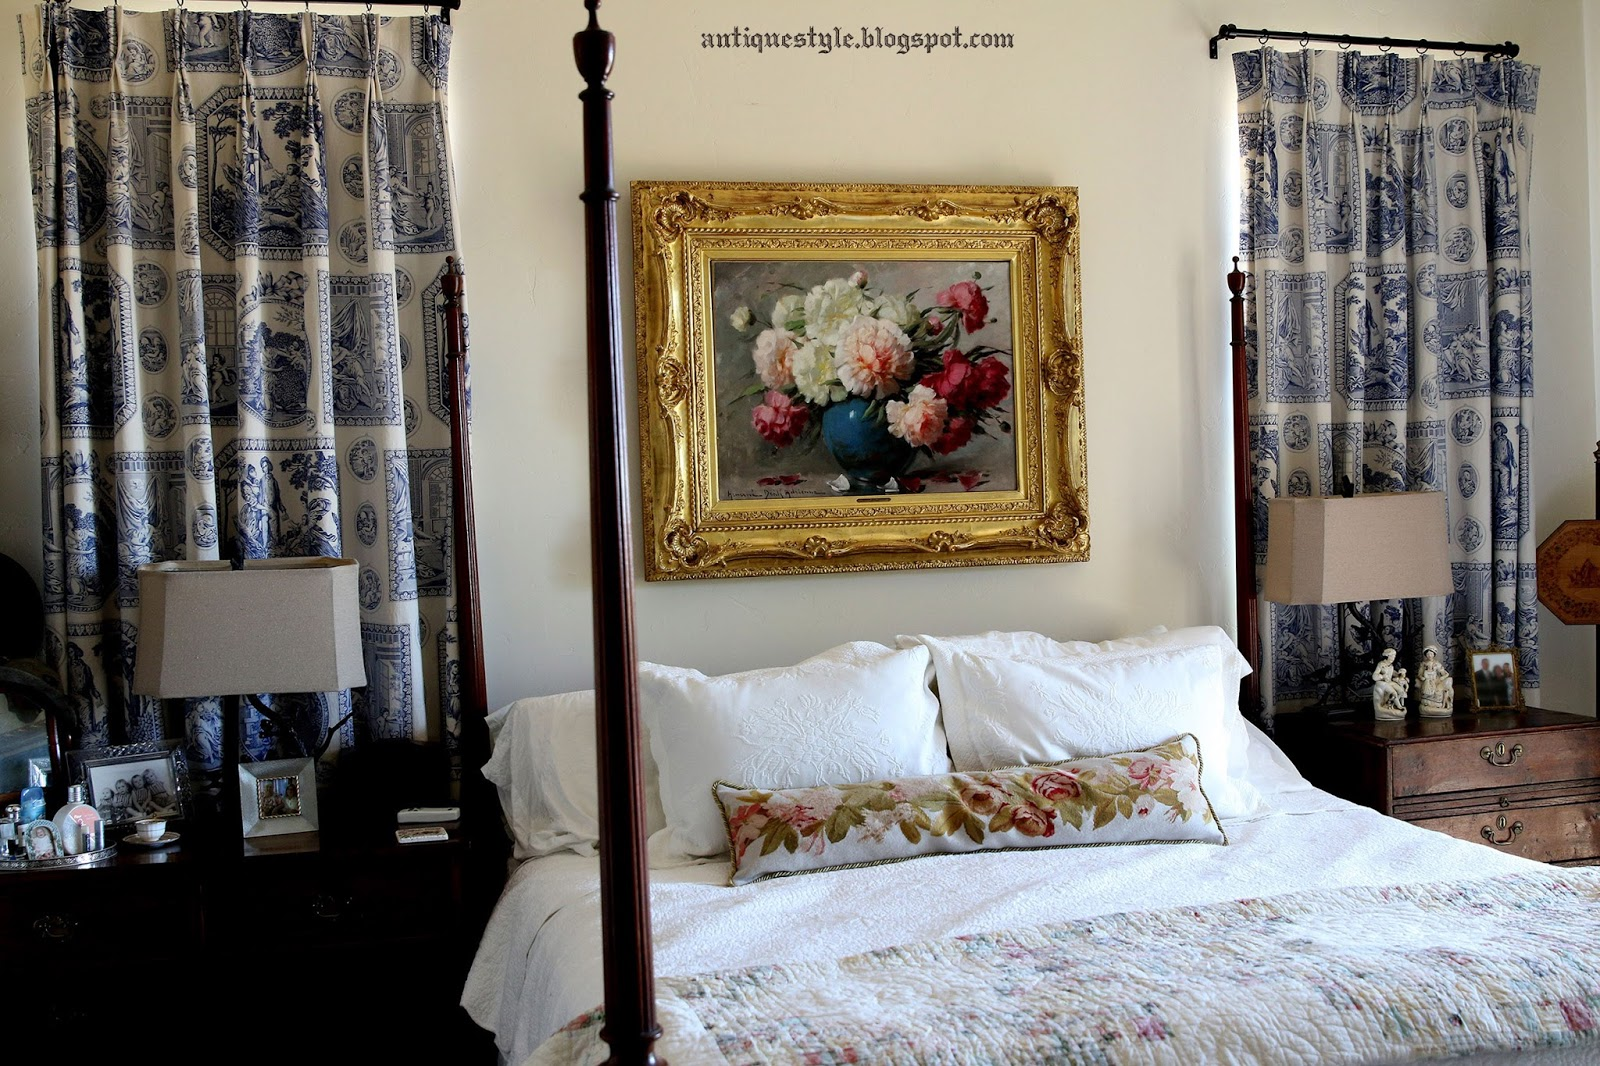 Decorating With Antiques antique style: decorating with antiques in a bedroom